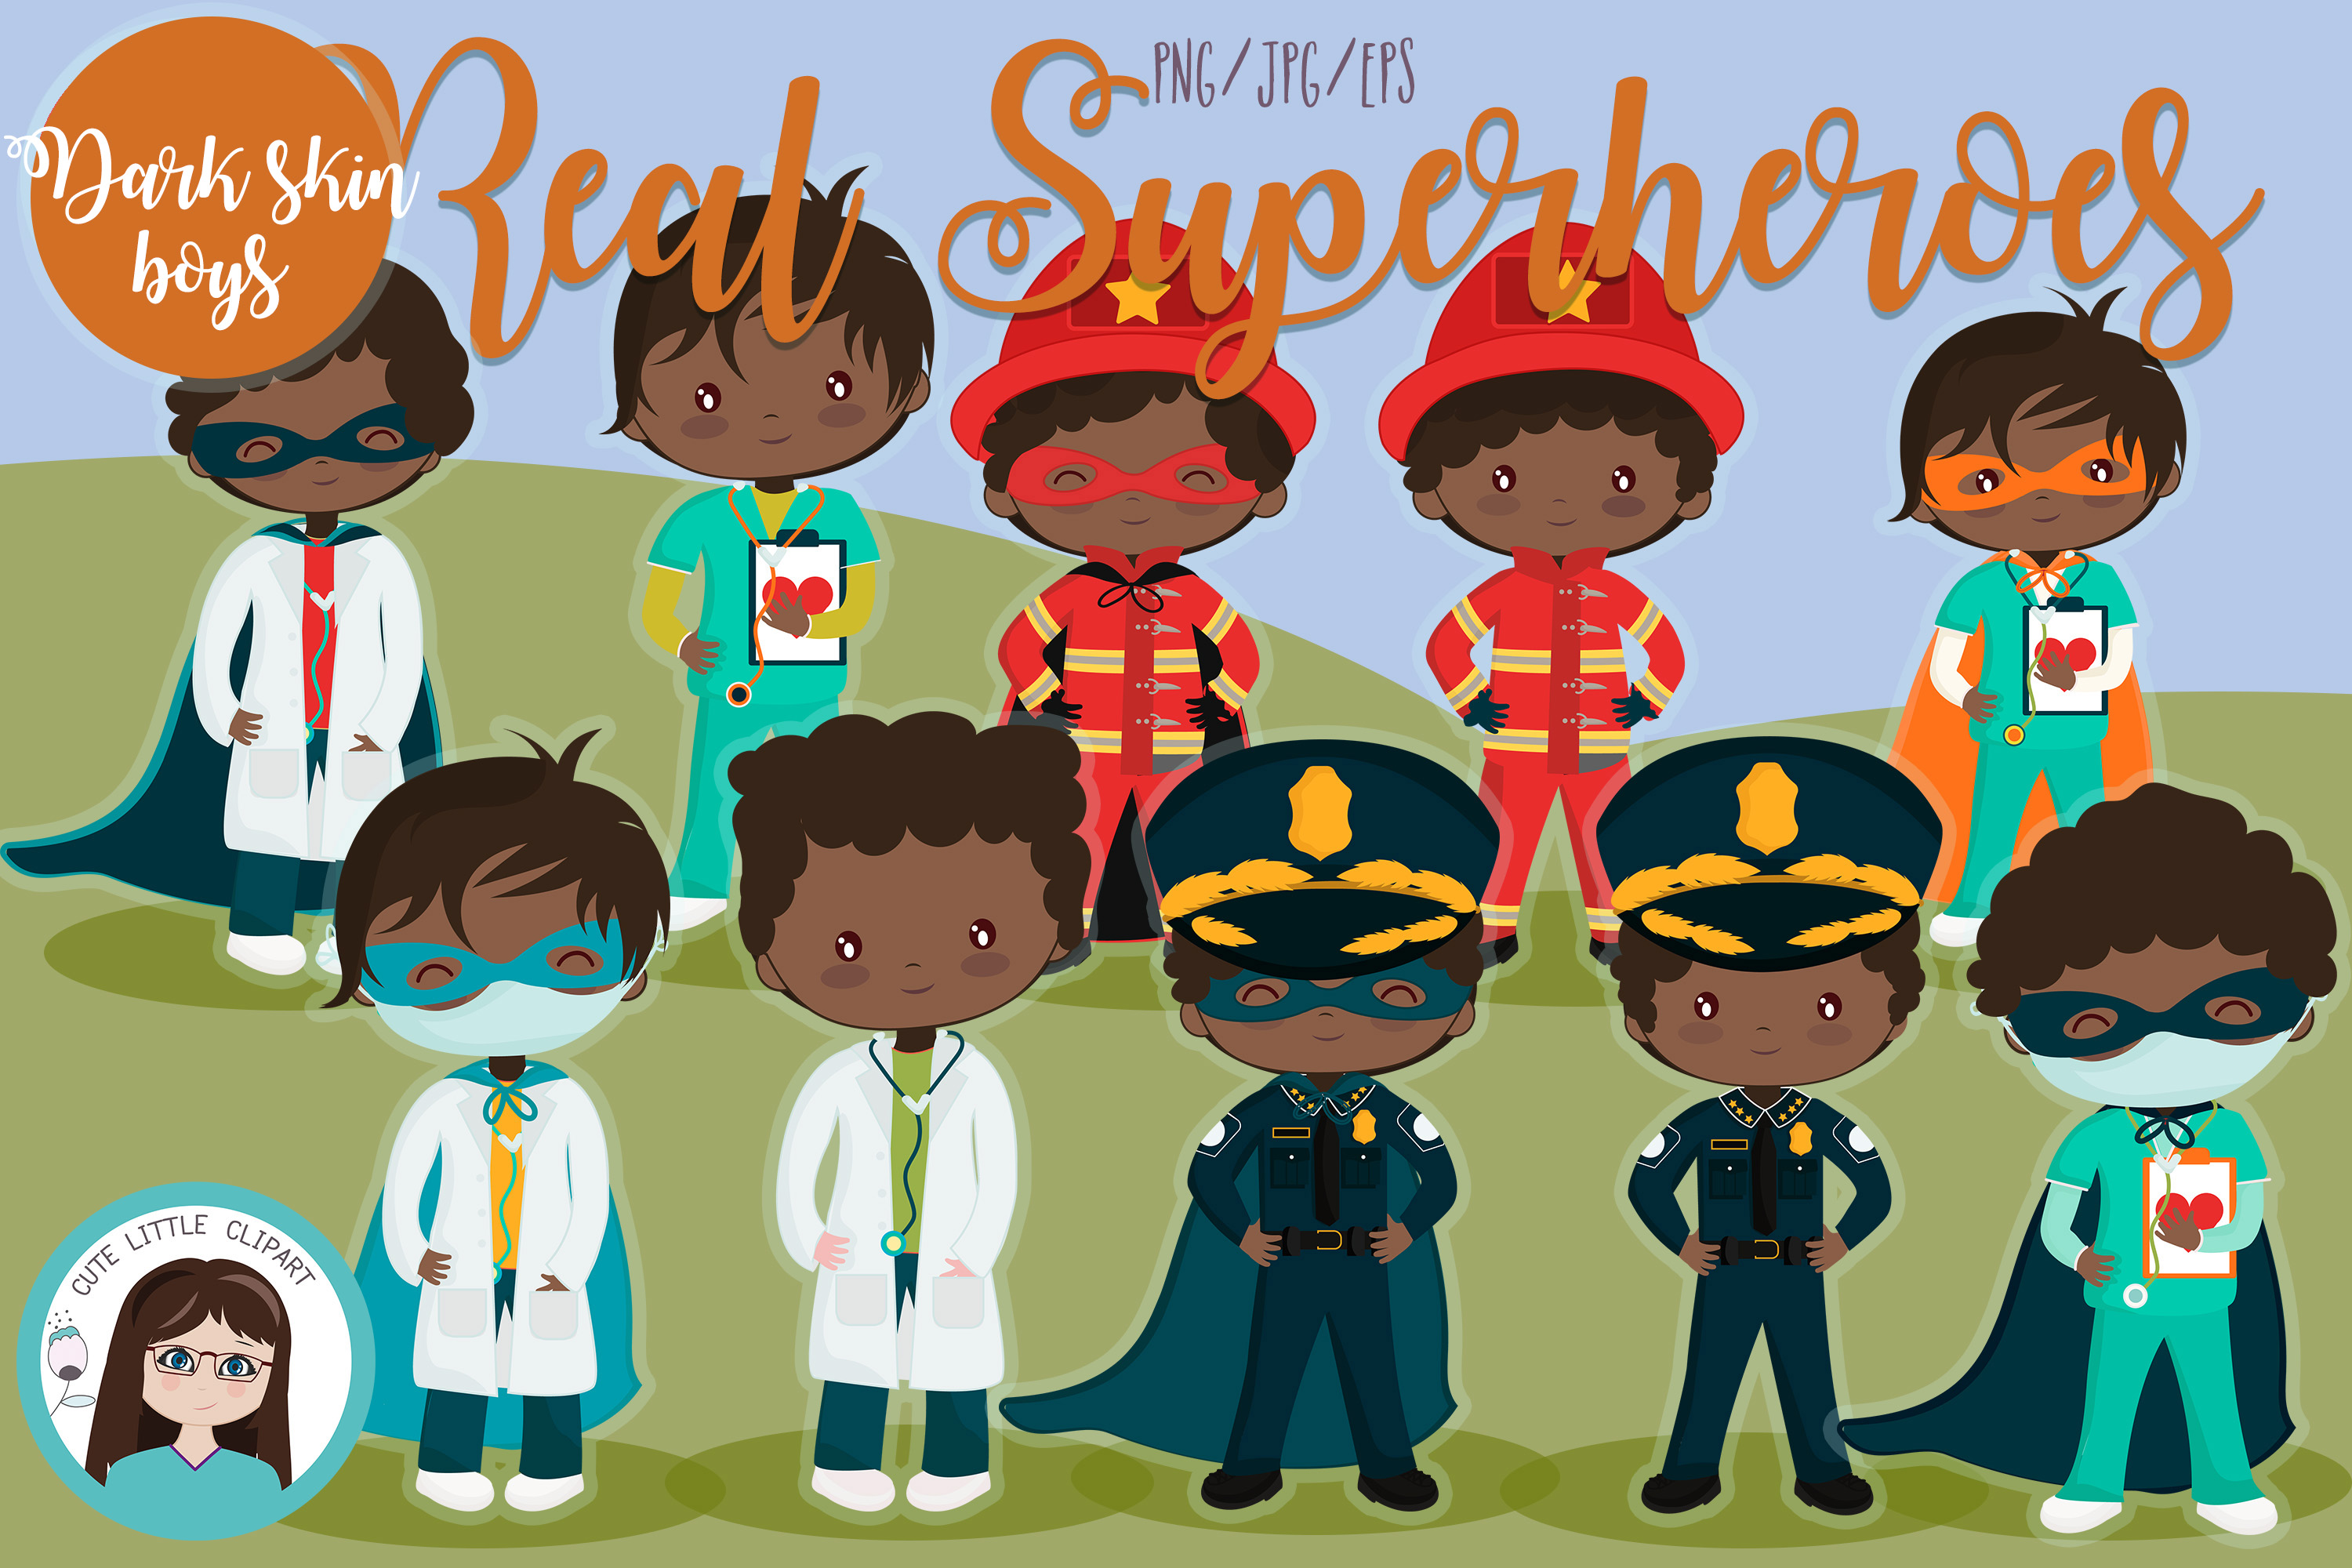 Download Free Real Superheroes Boys Dark Skin Graphic By Cutelittleclipart for Cricut Explore, Silhouette and other cutting machines.